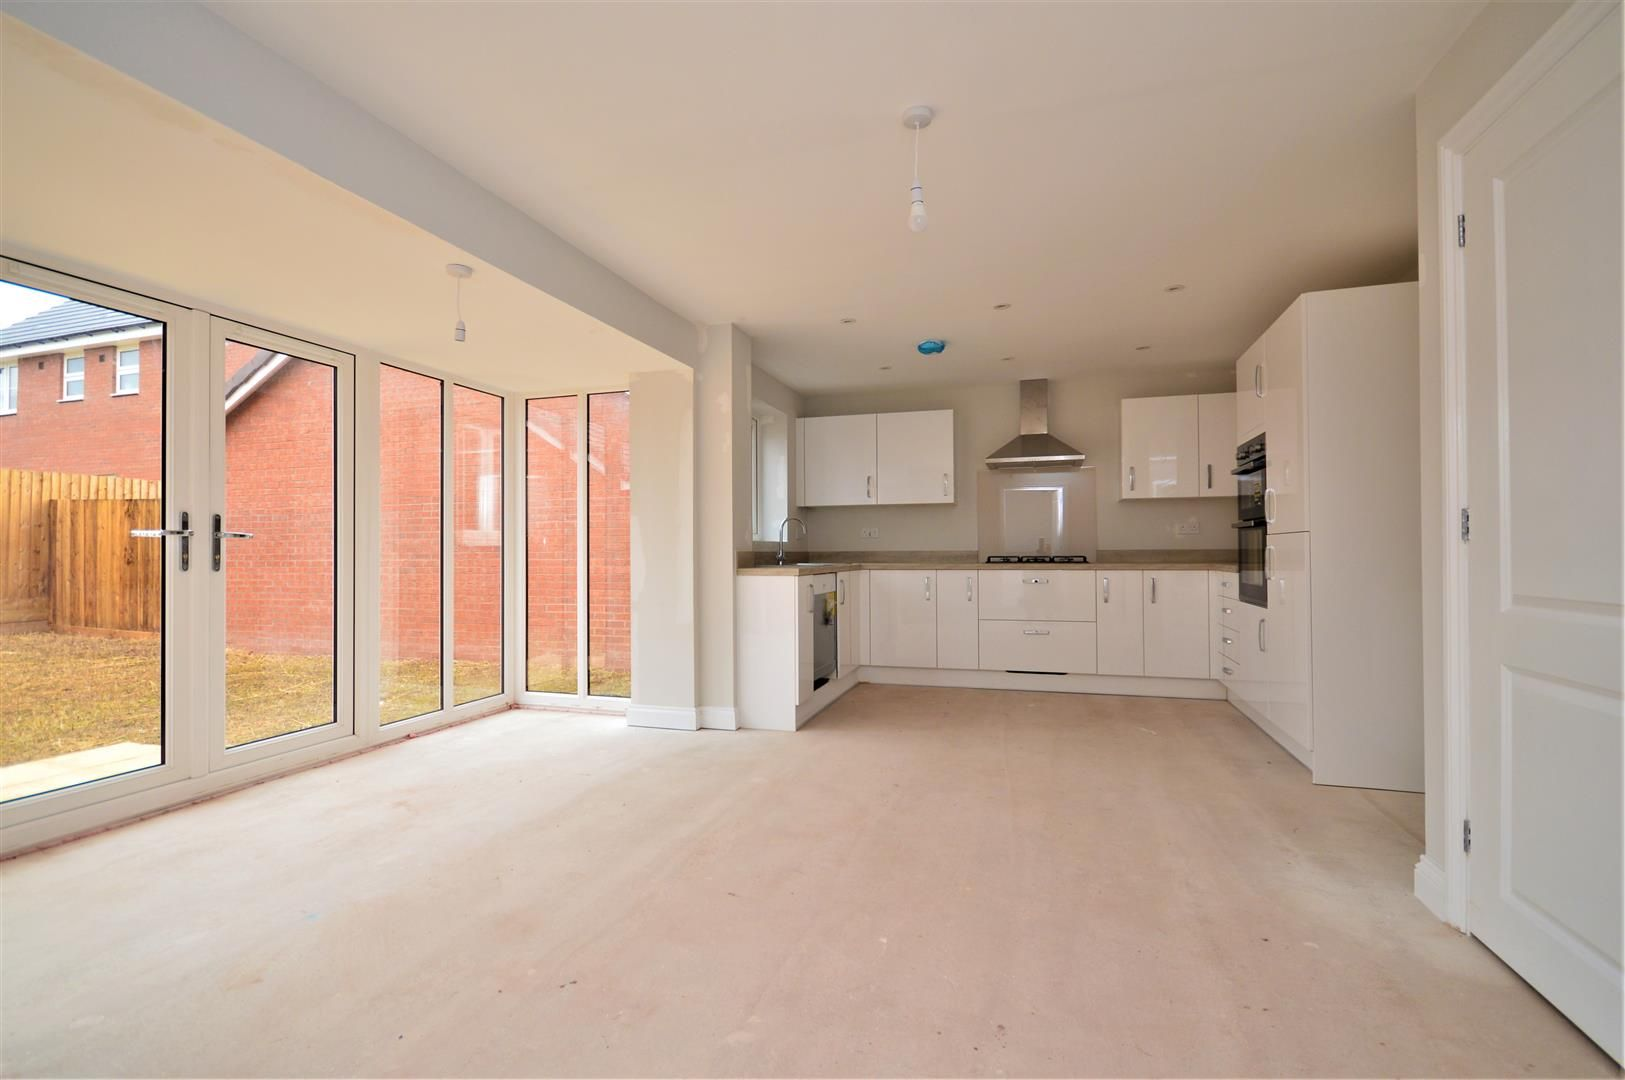 4 bed detached for sale in Kingstone 3